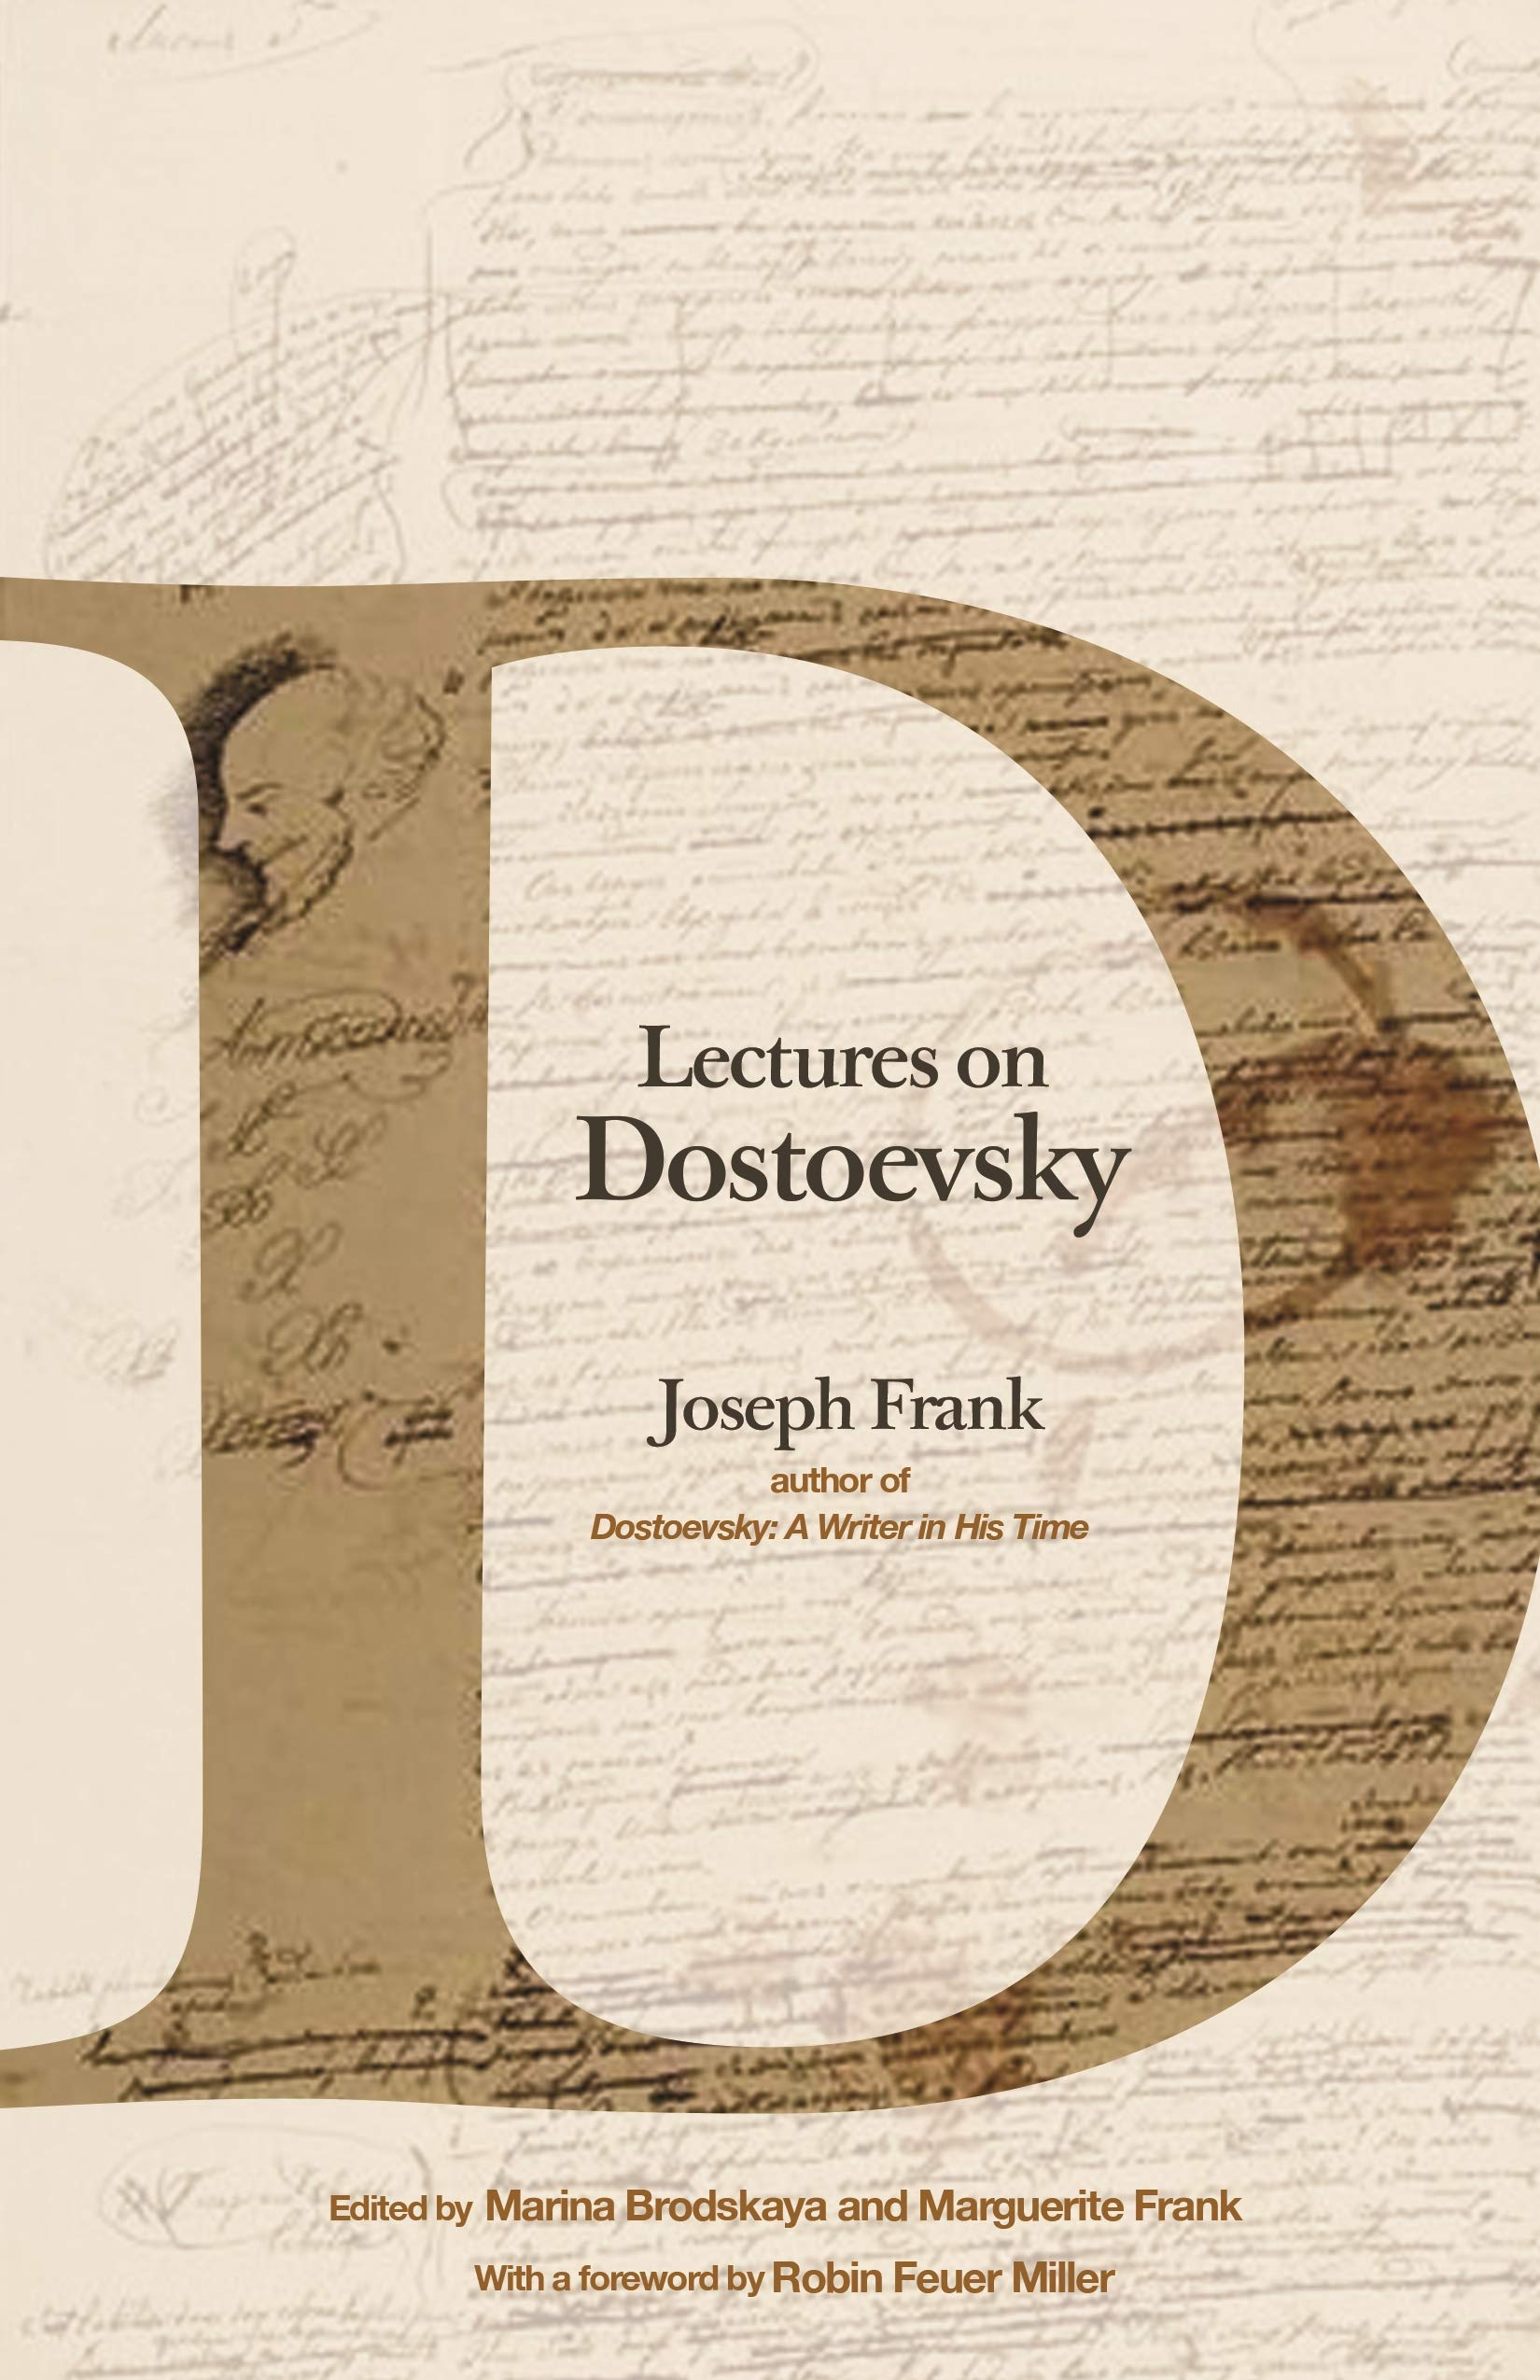 Joseph Frank. Lectures on Dostoevsky.